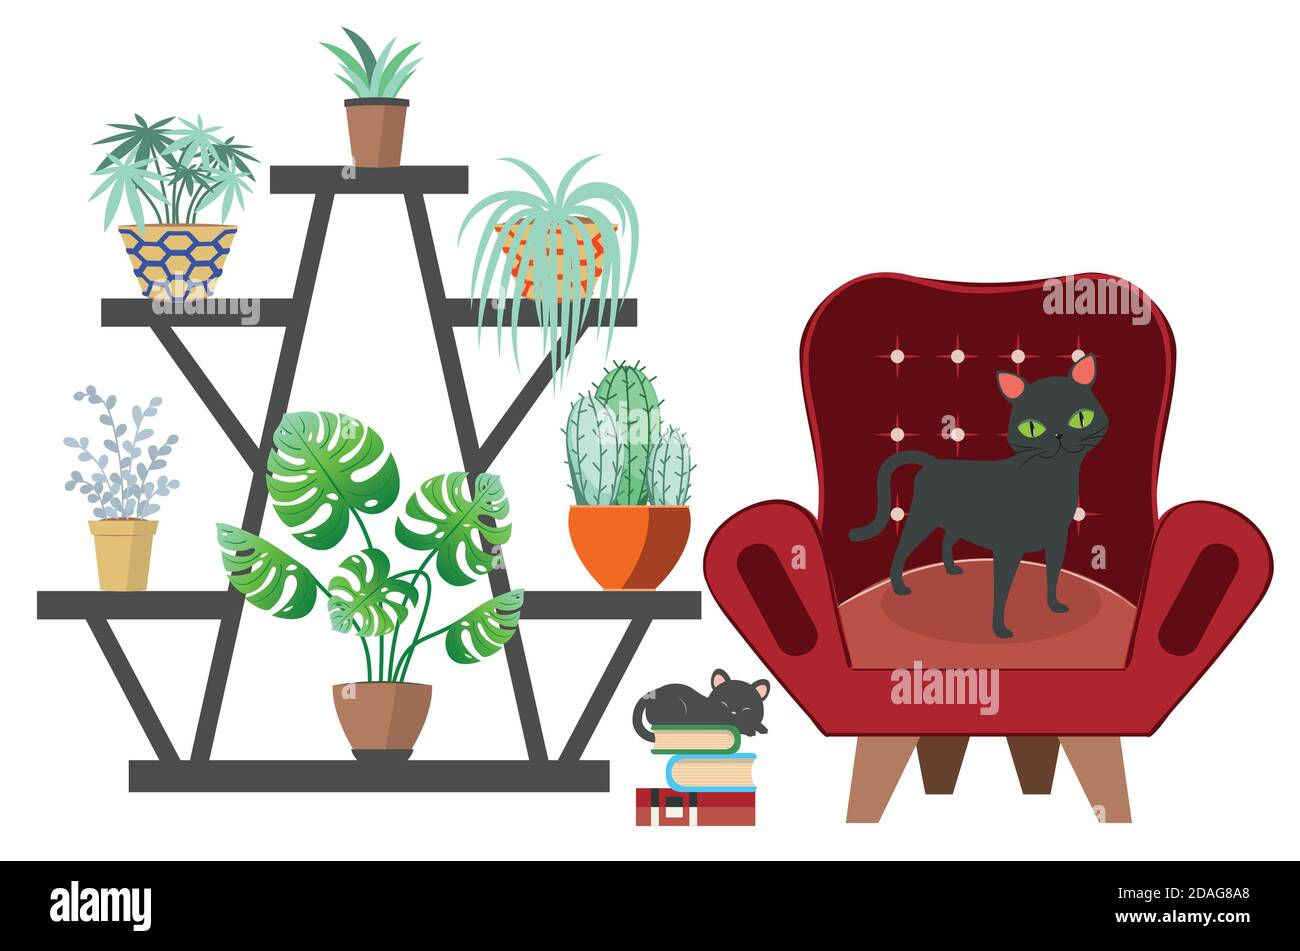 Simple Room Design With Black Cat Art Chair And House Plants Illustration Stock Vector Image Art Alamy